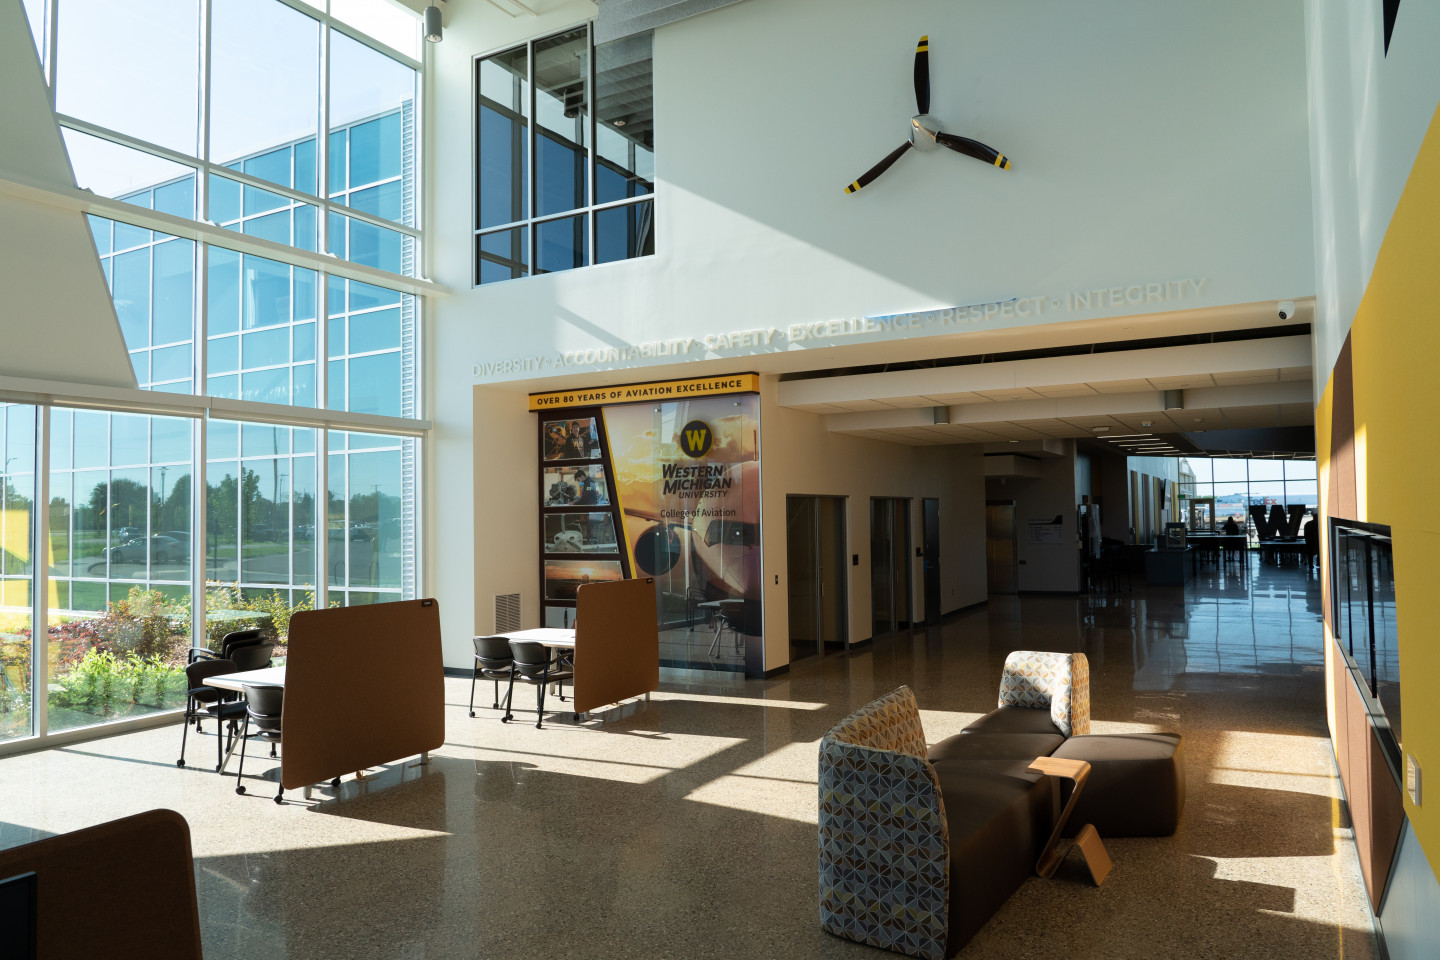 The main entry of the Aviation Education Center, featuring seating and a propeller on a wall.